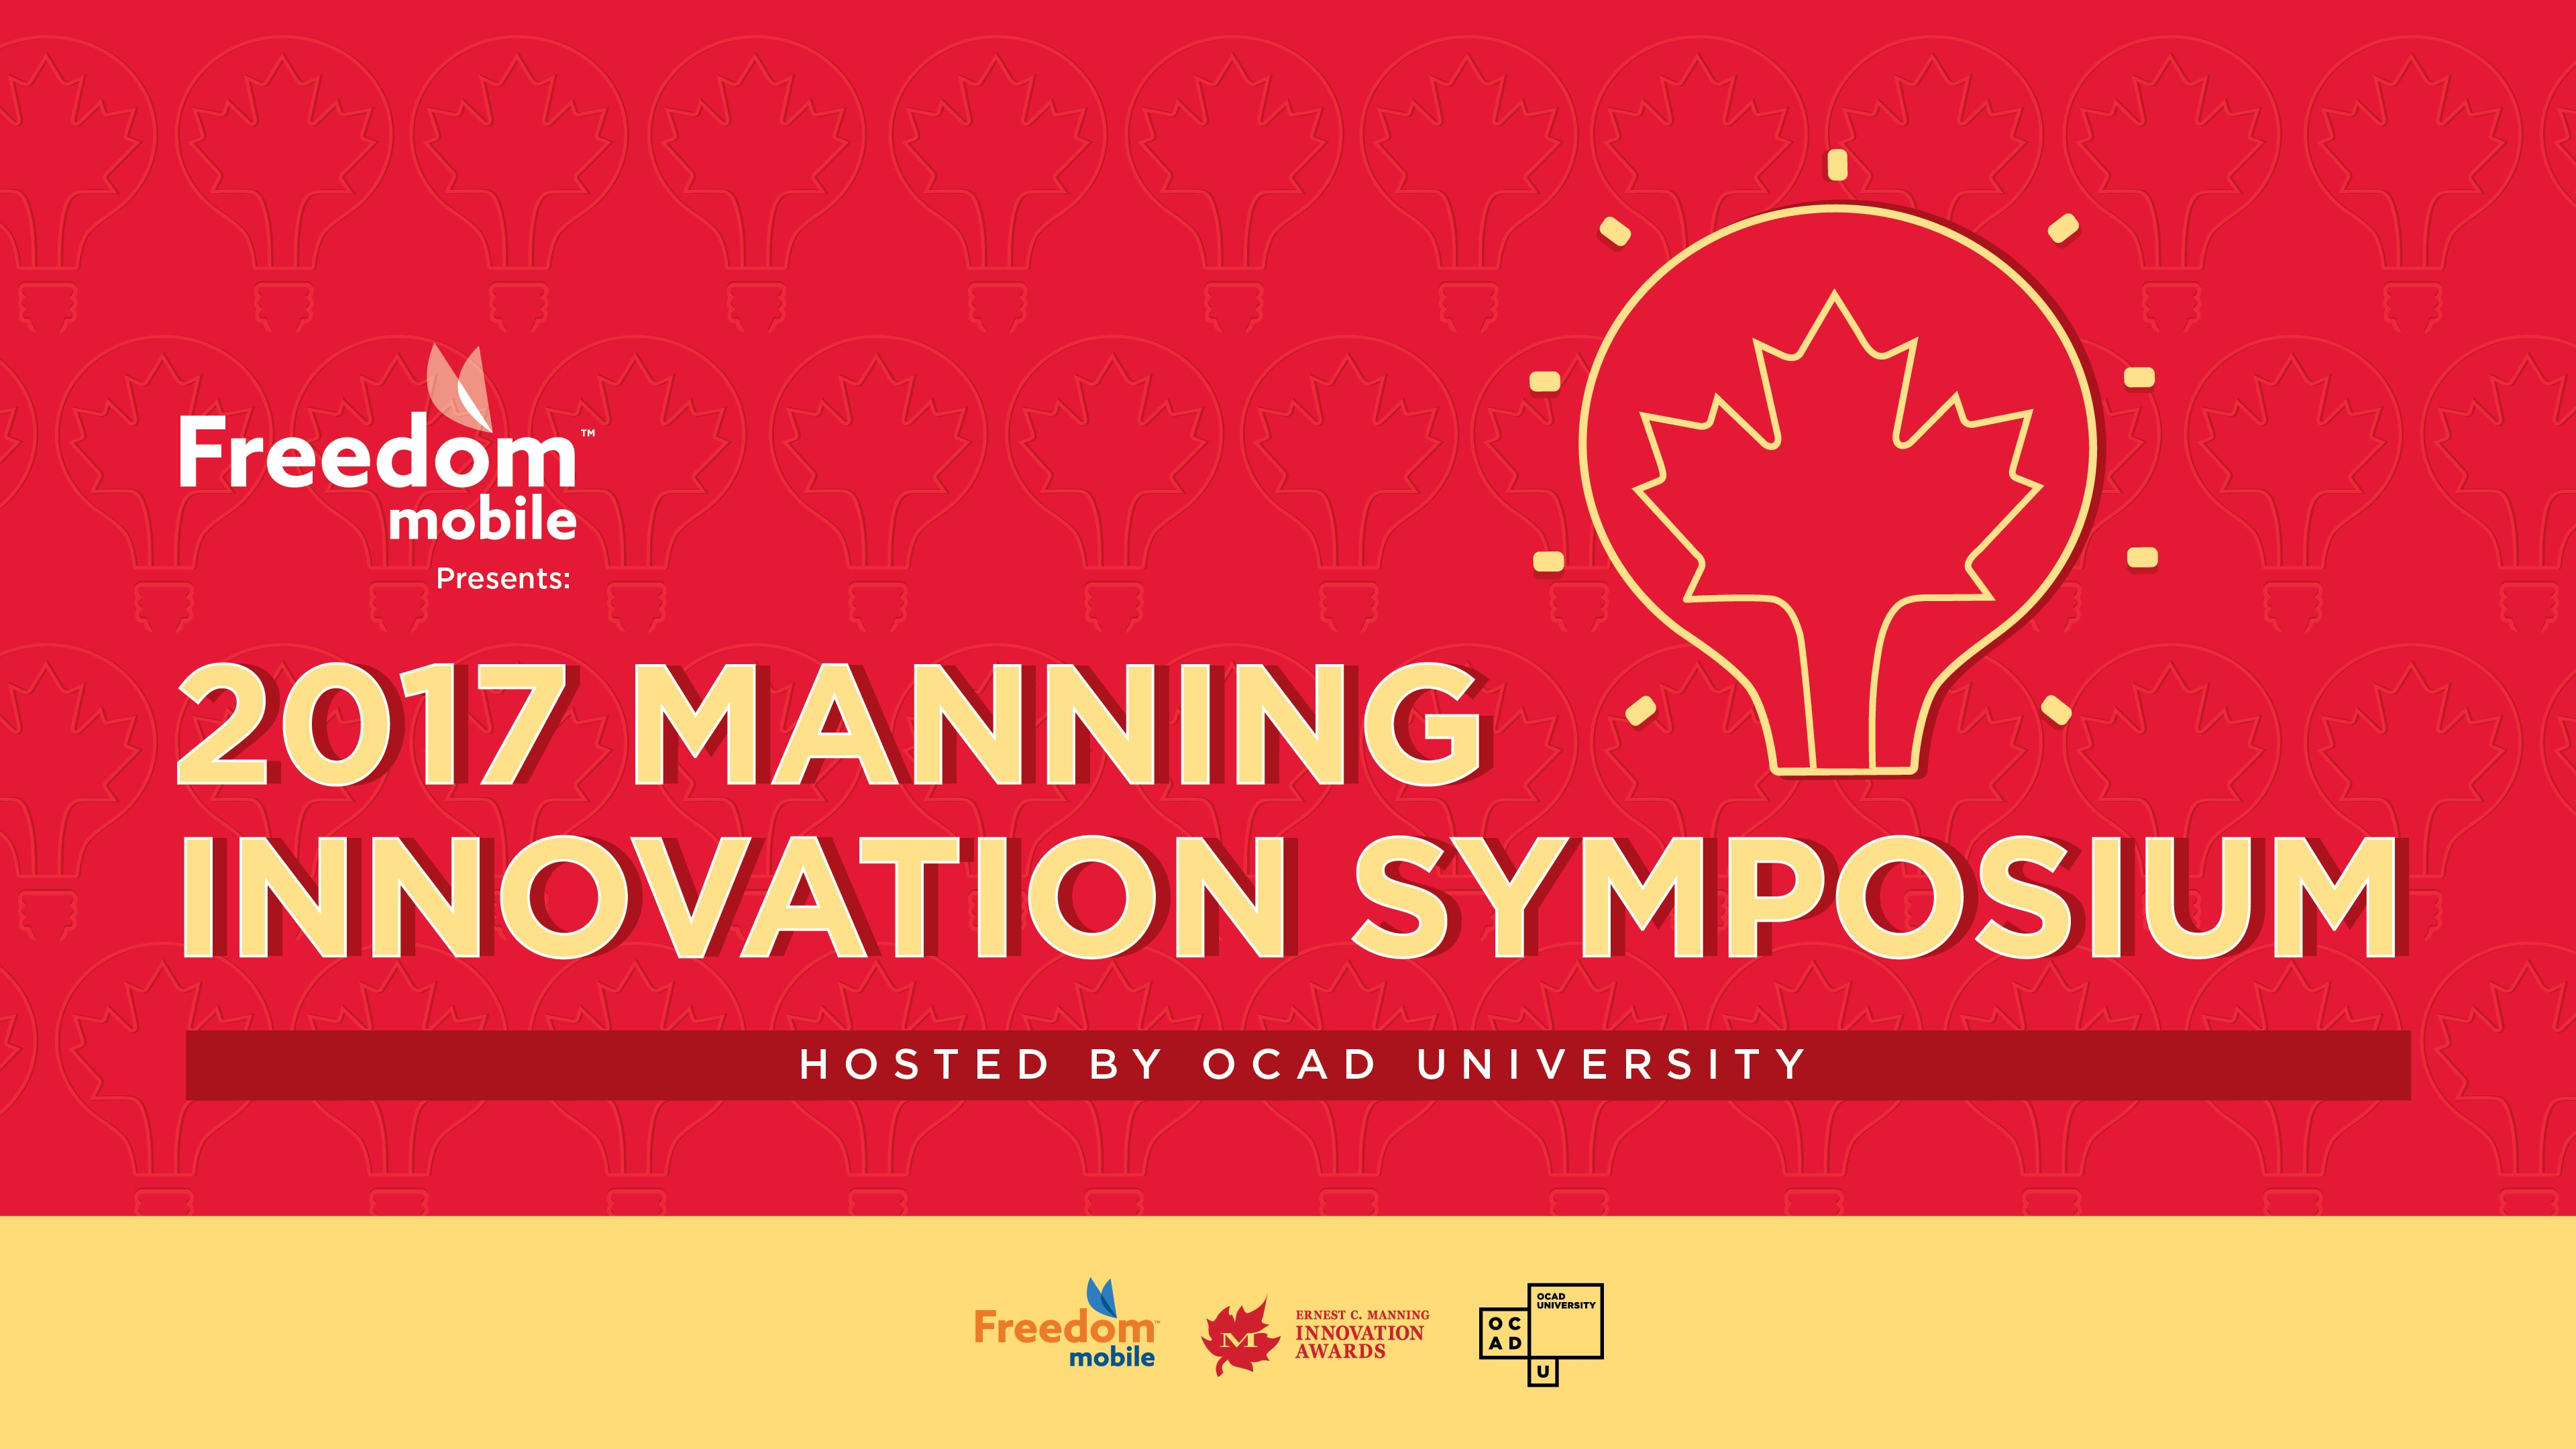 2017 Manning Innovation Symposium